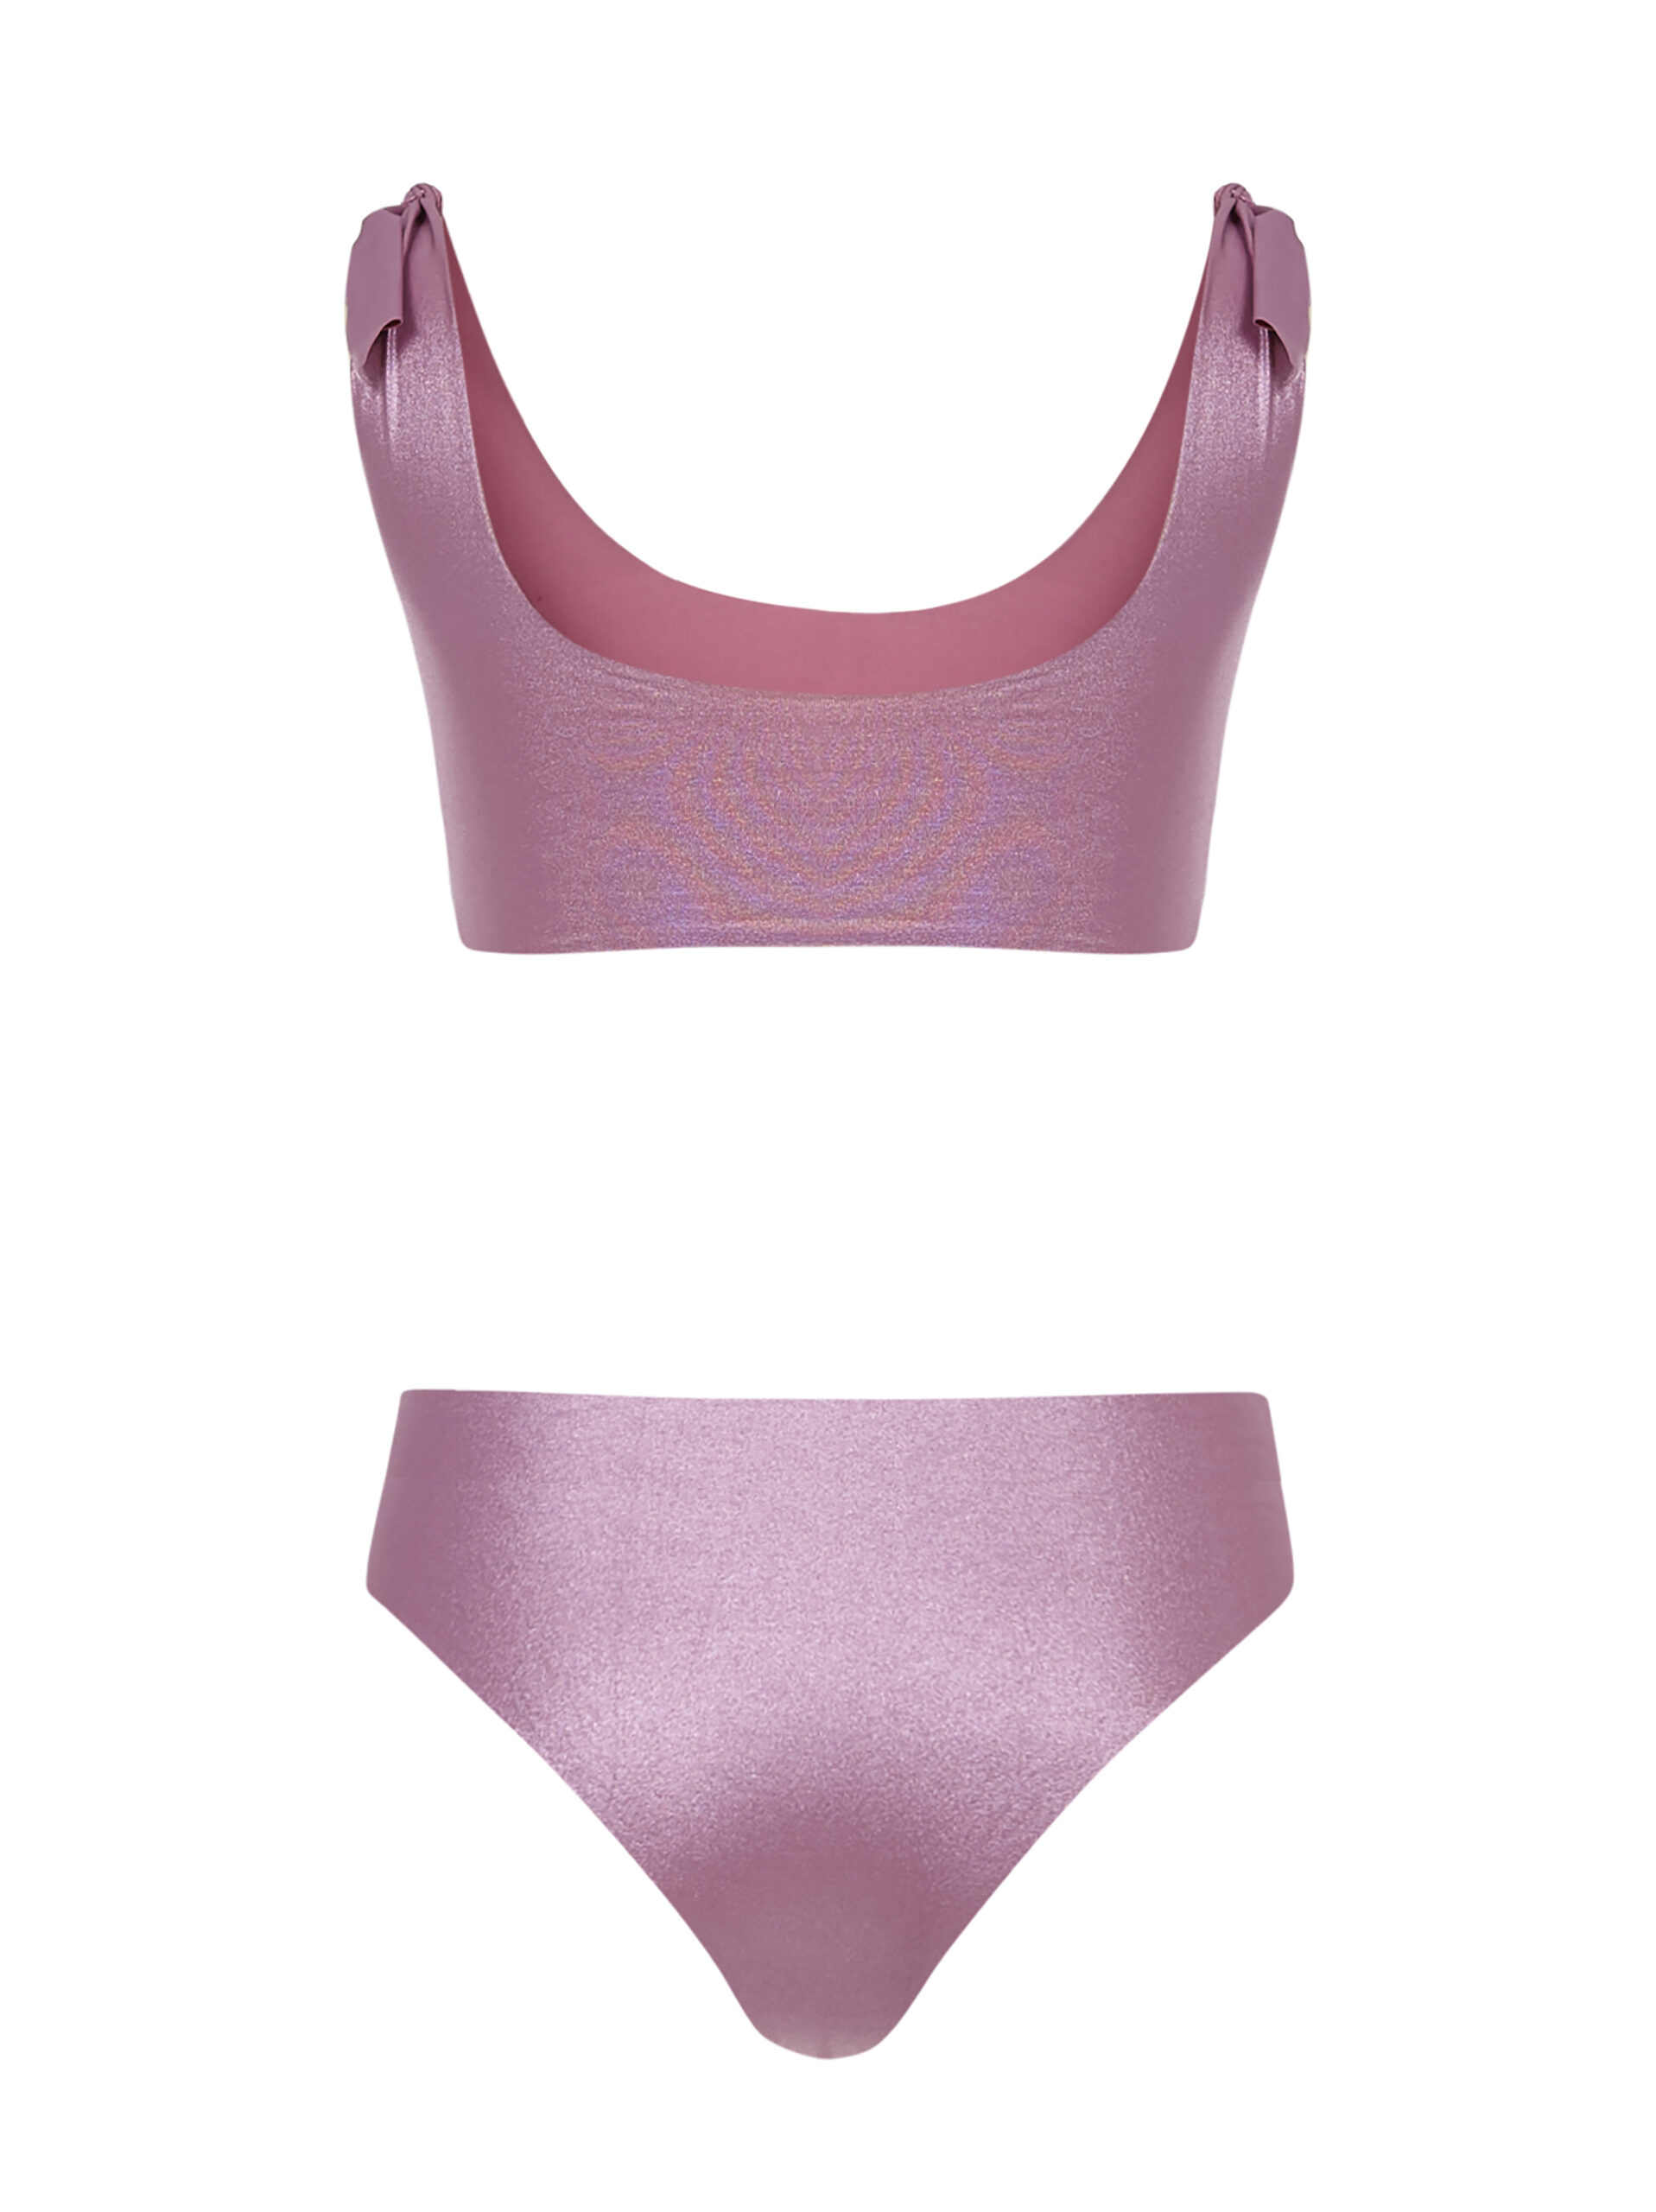 Knotting Bay REGULAR_MetallicRosé2